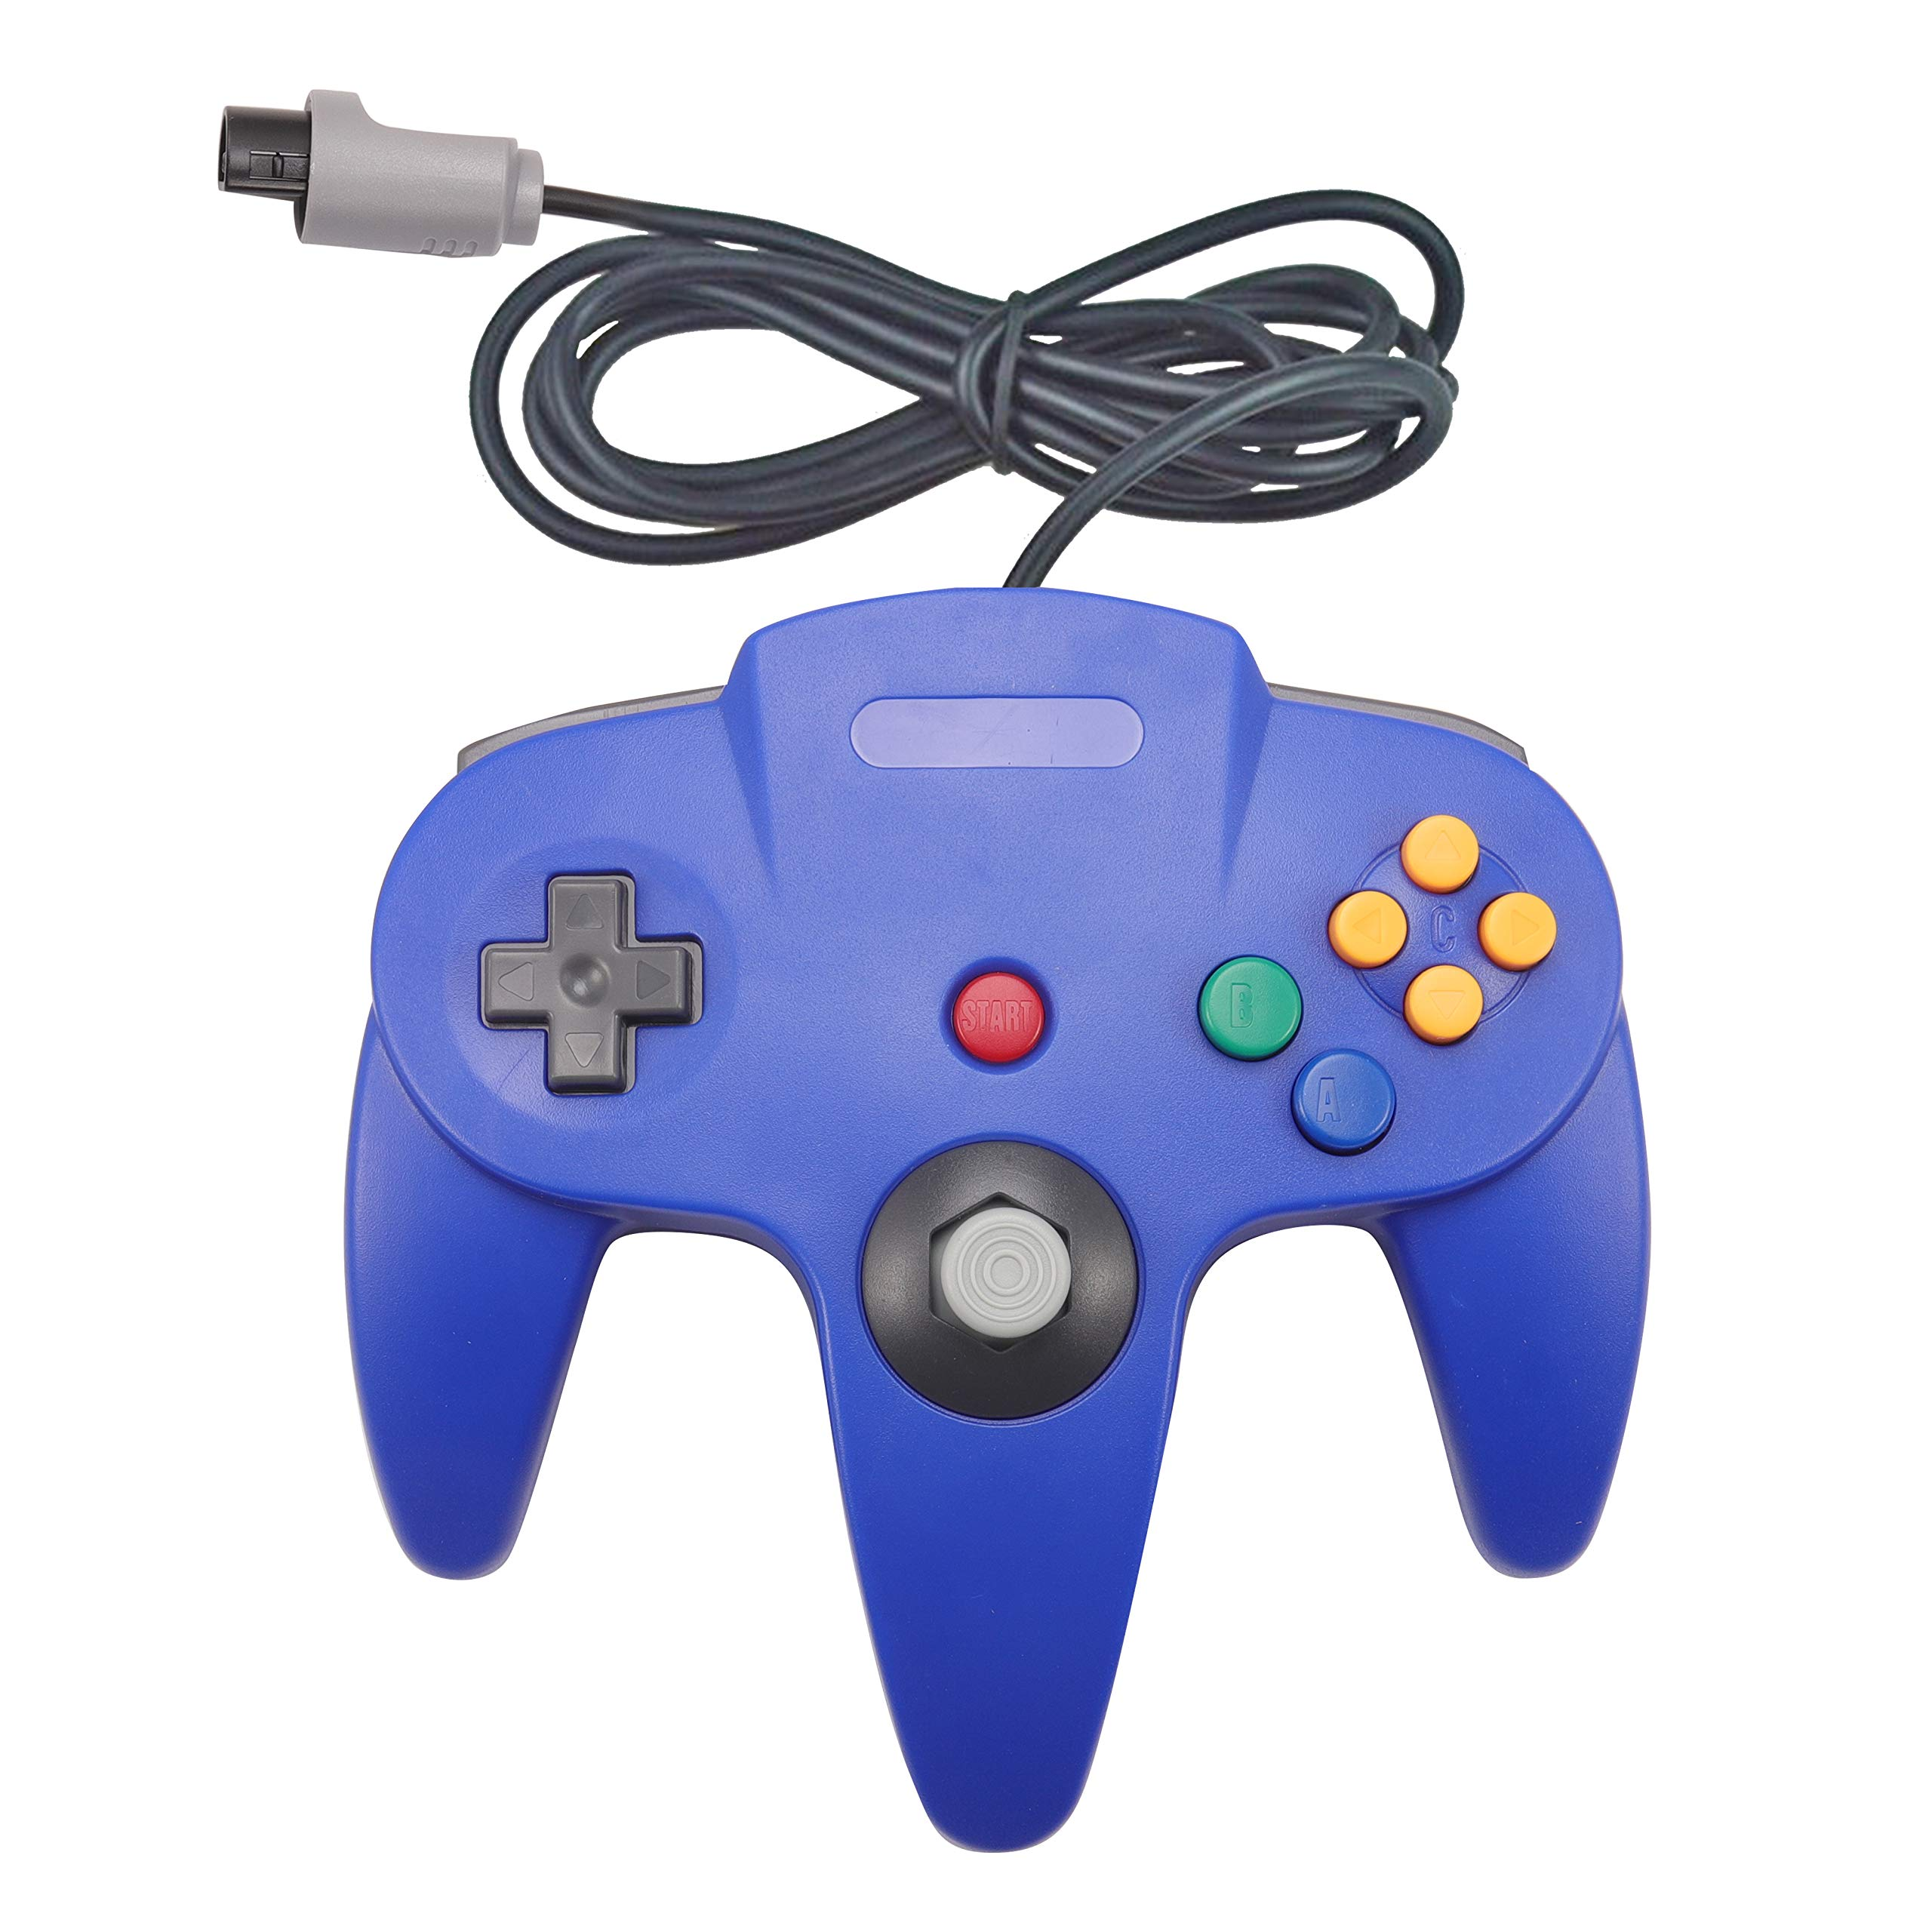 Joxde 1 Pack Upgraded Joystick Classic Wired Controller for N64 Gamepad Console (Blue2)